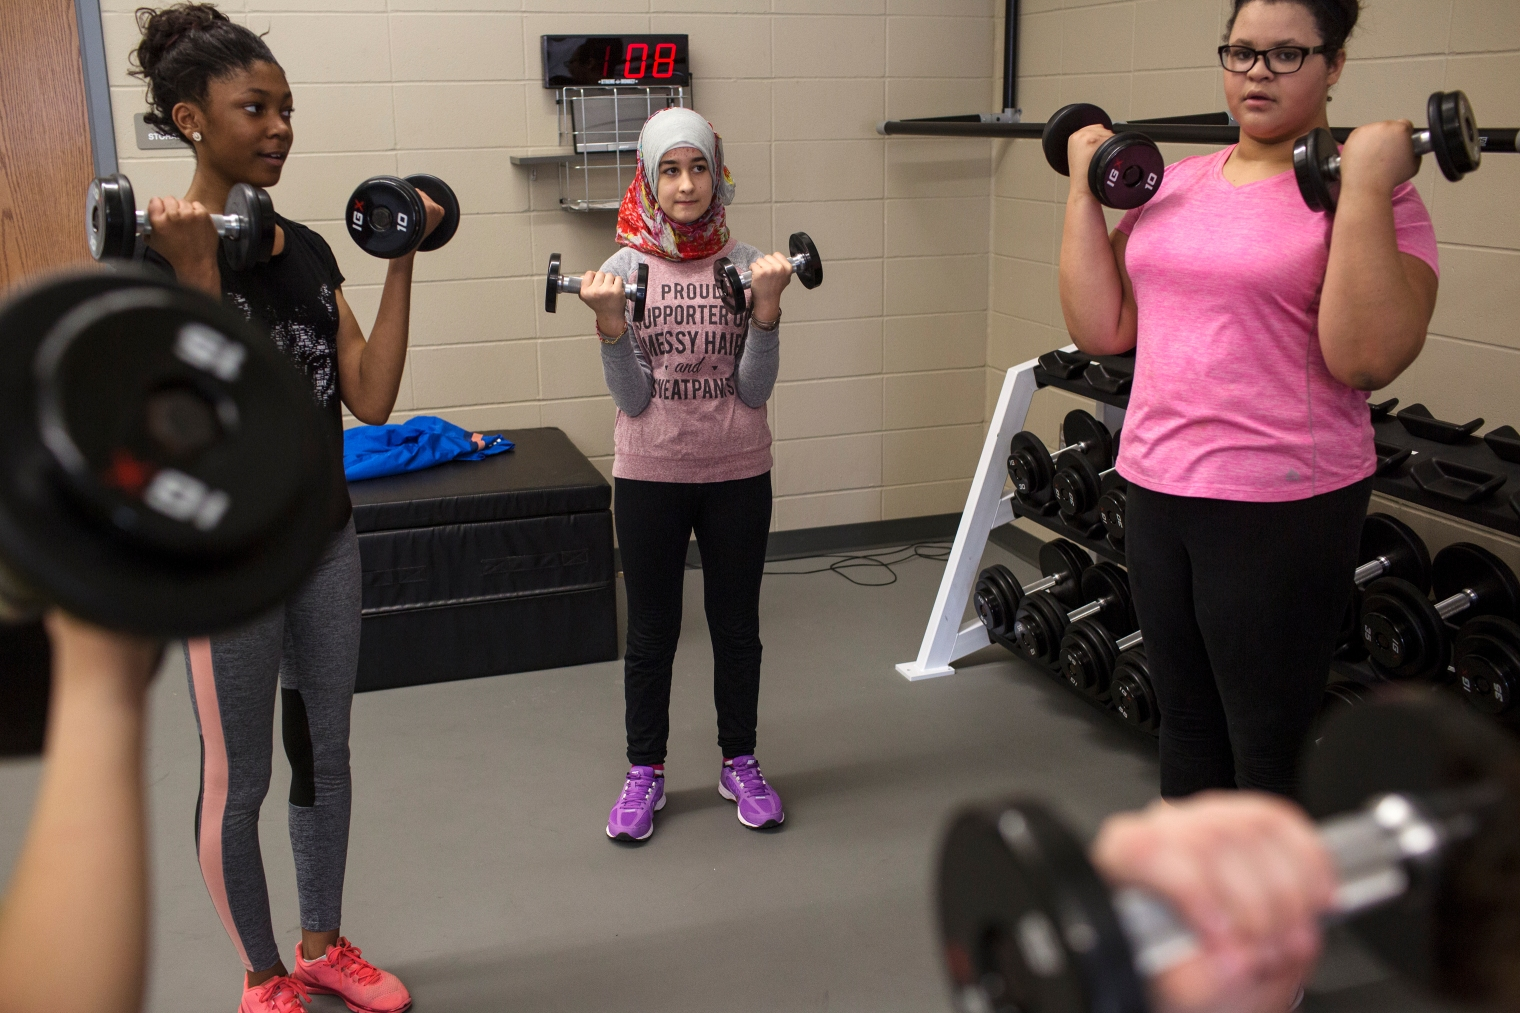 Sedra Tameem lifts weights during gym class at Waukee Middle School. Waukee is a suburb of Des Moines, Iowa.